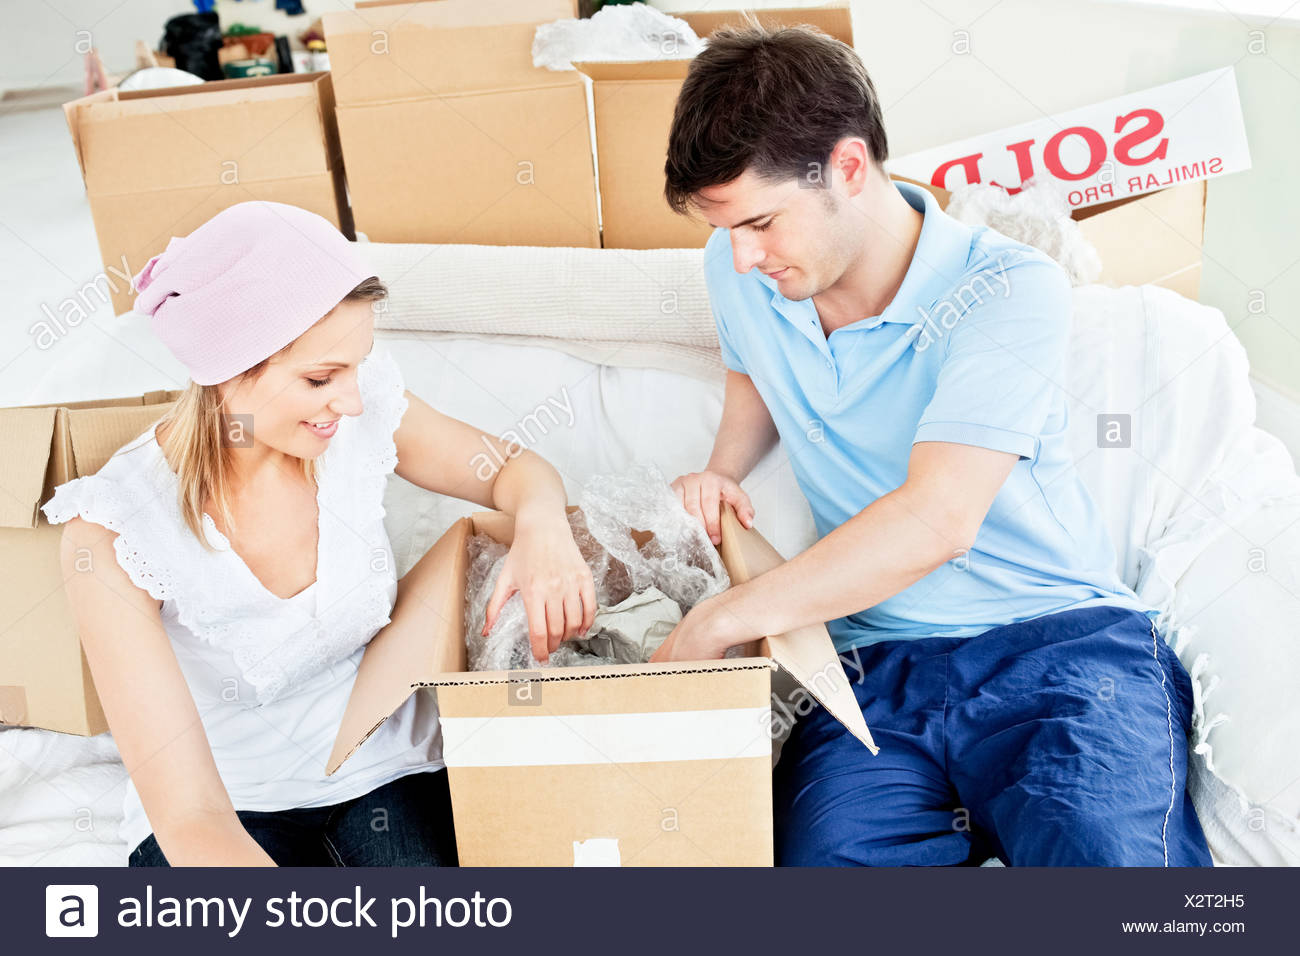 Positive young couple unpacking boxes with glasses - Stock Image